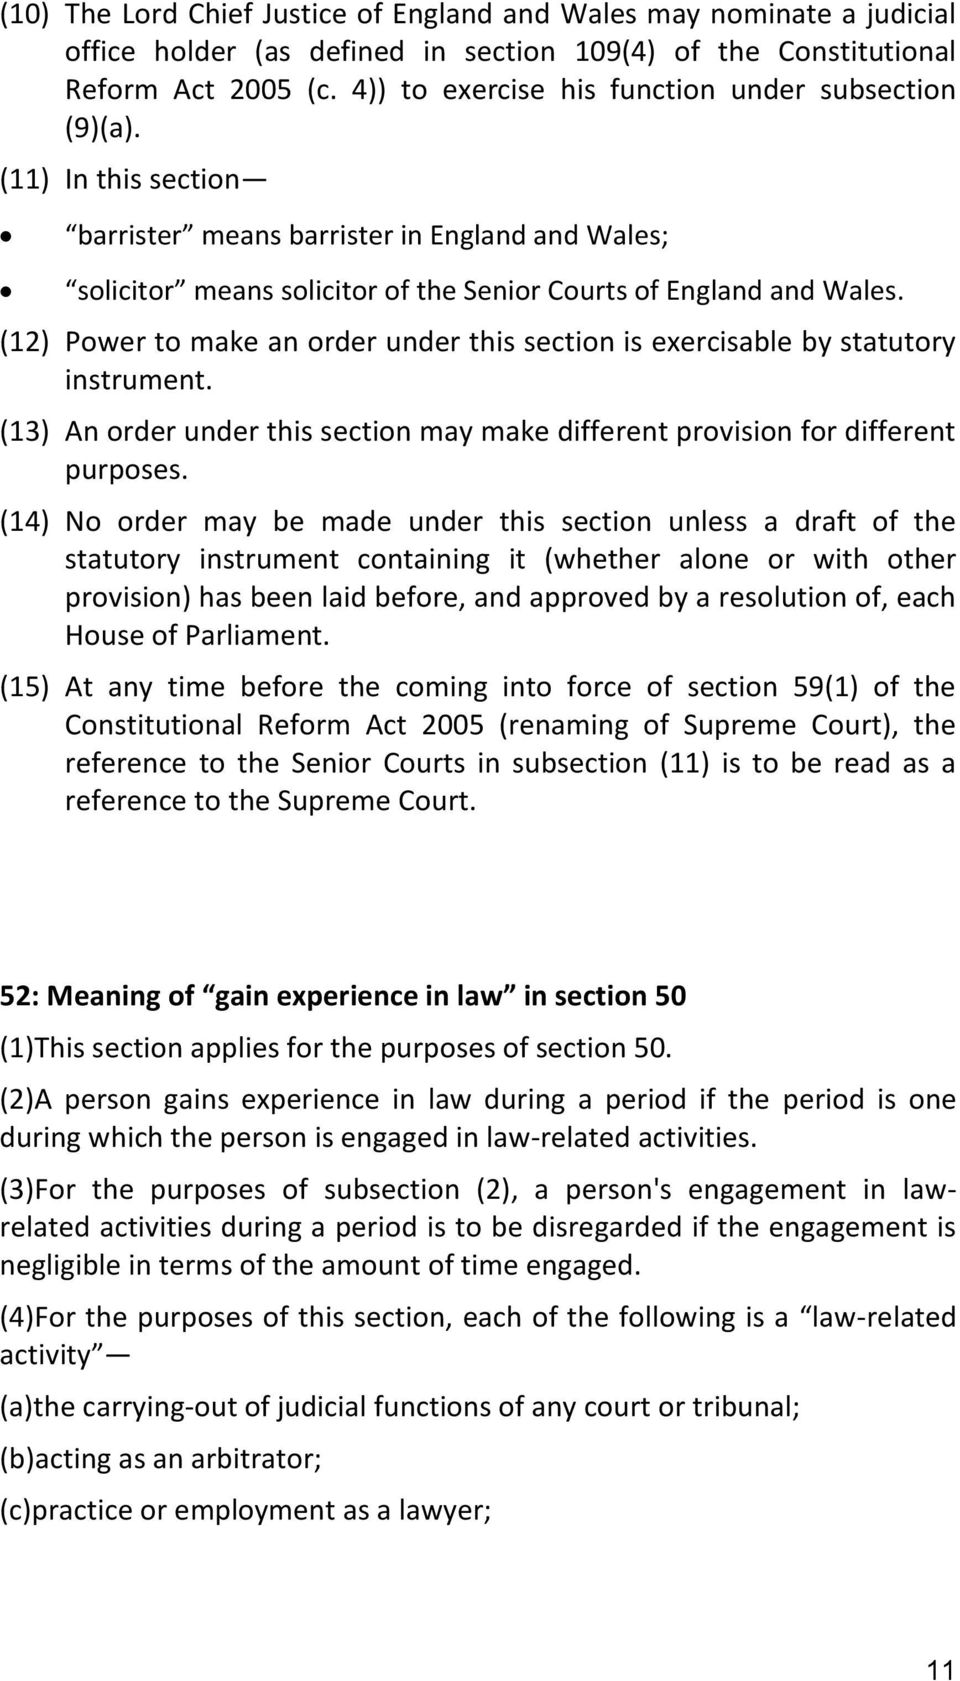 (12) Power to make an order under this section is exercisable by statutory instrument. (13) An order under this section may make different provision for different purposes.